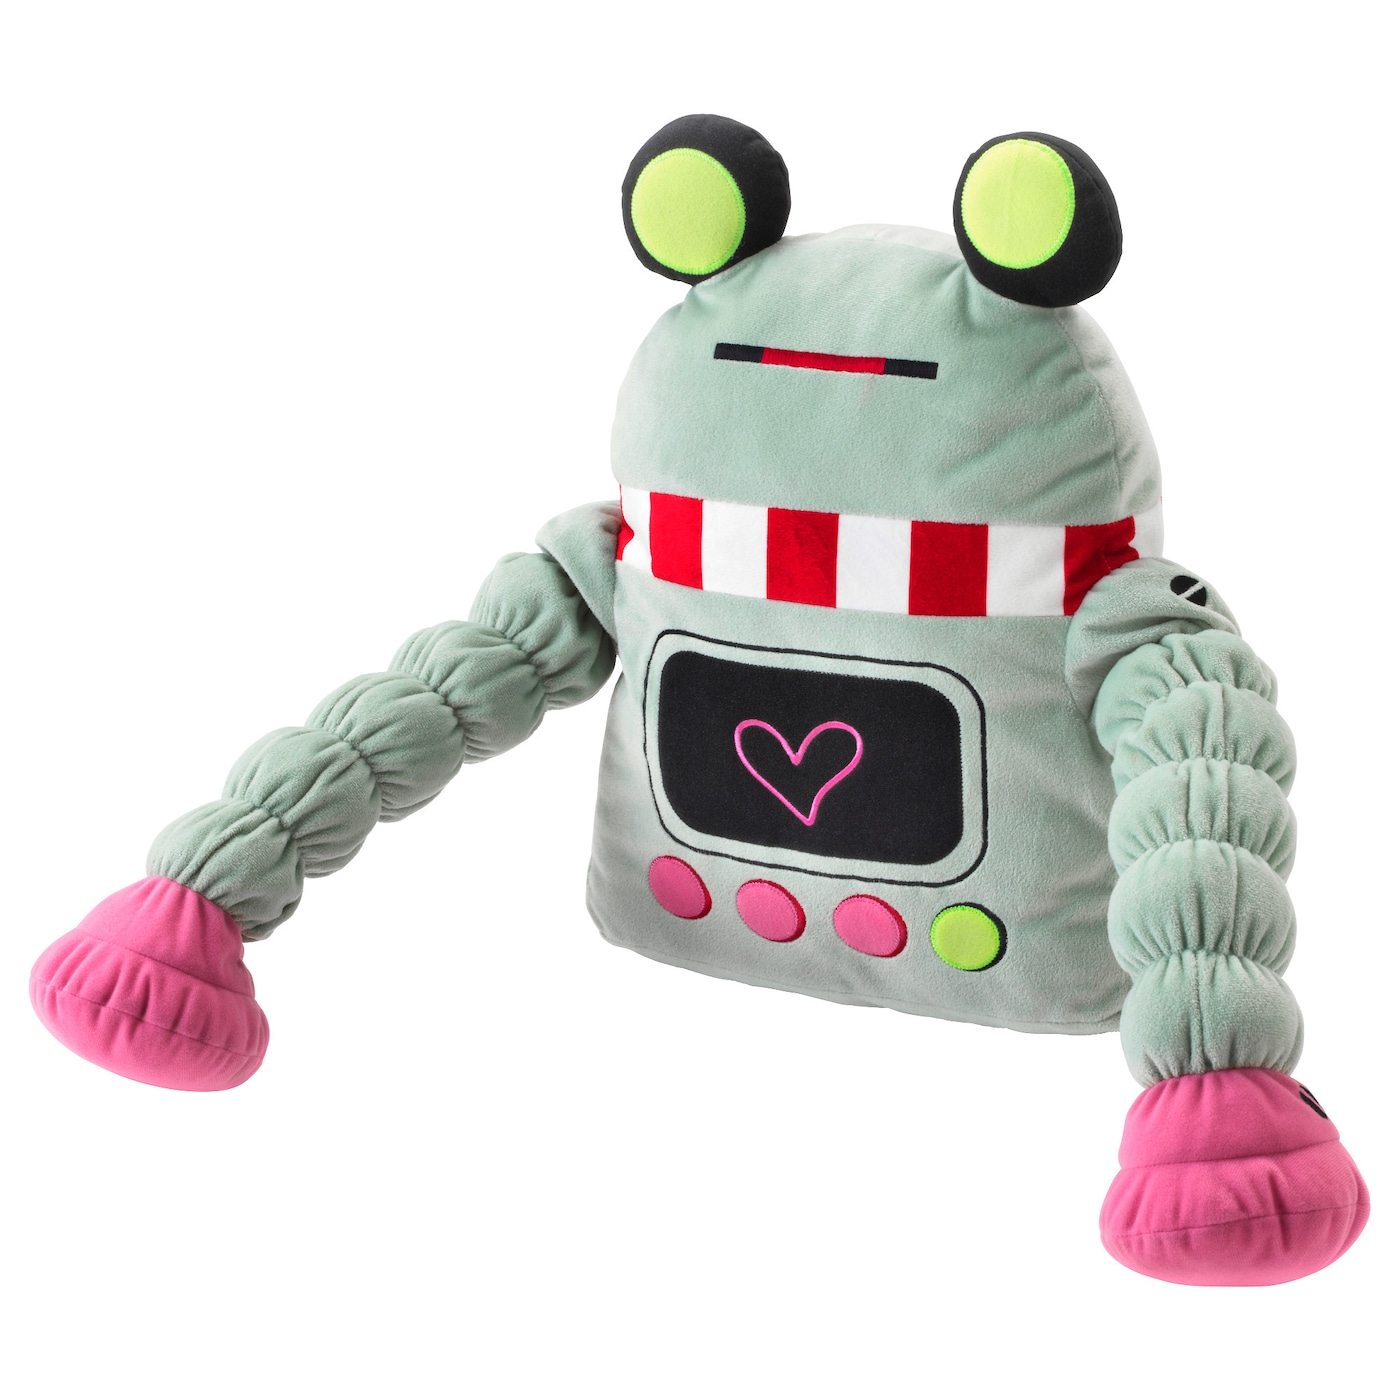 LATTJO Soft toy Robot light green IKEA